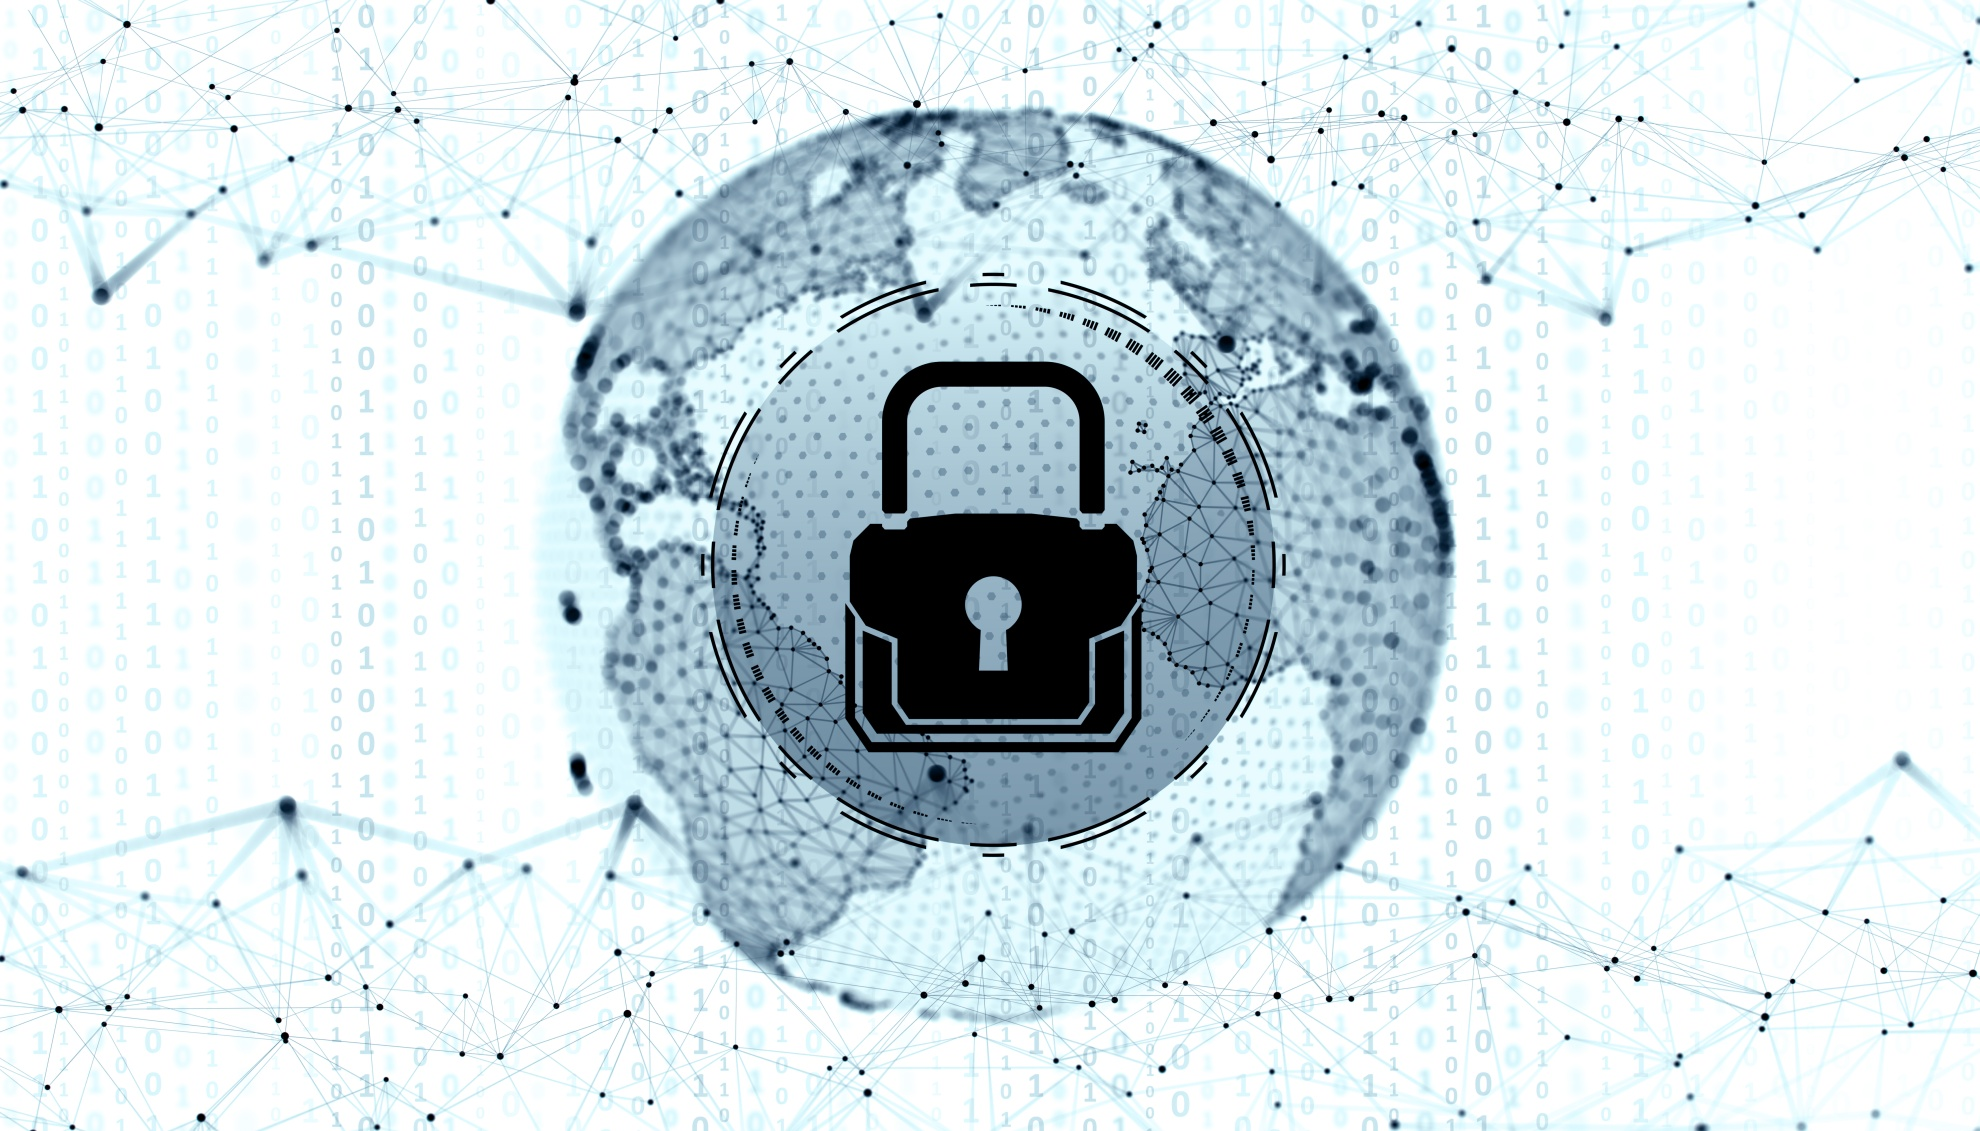 Lack of Security in IoT Devices Explained. What Can We Do About It?